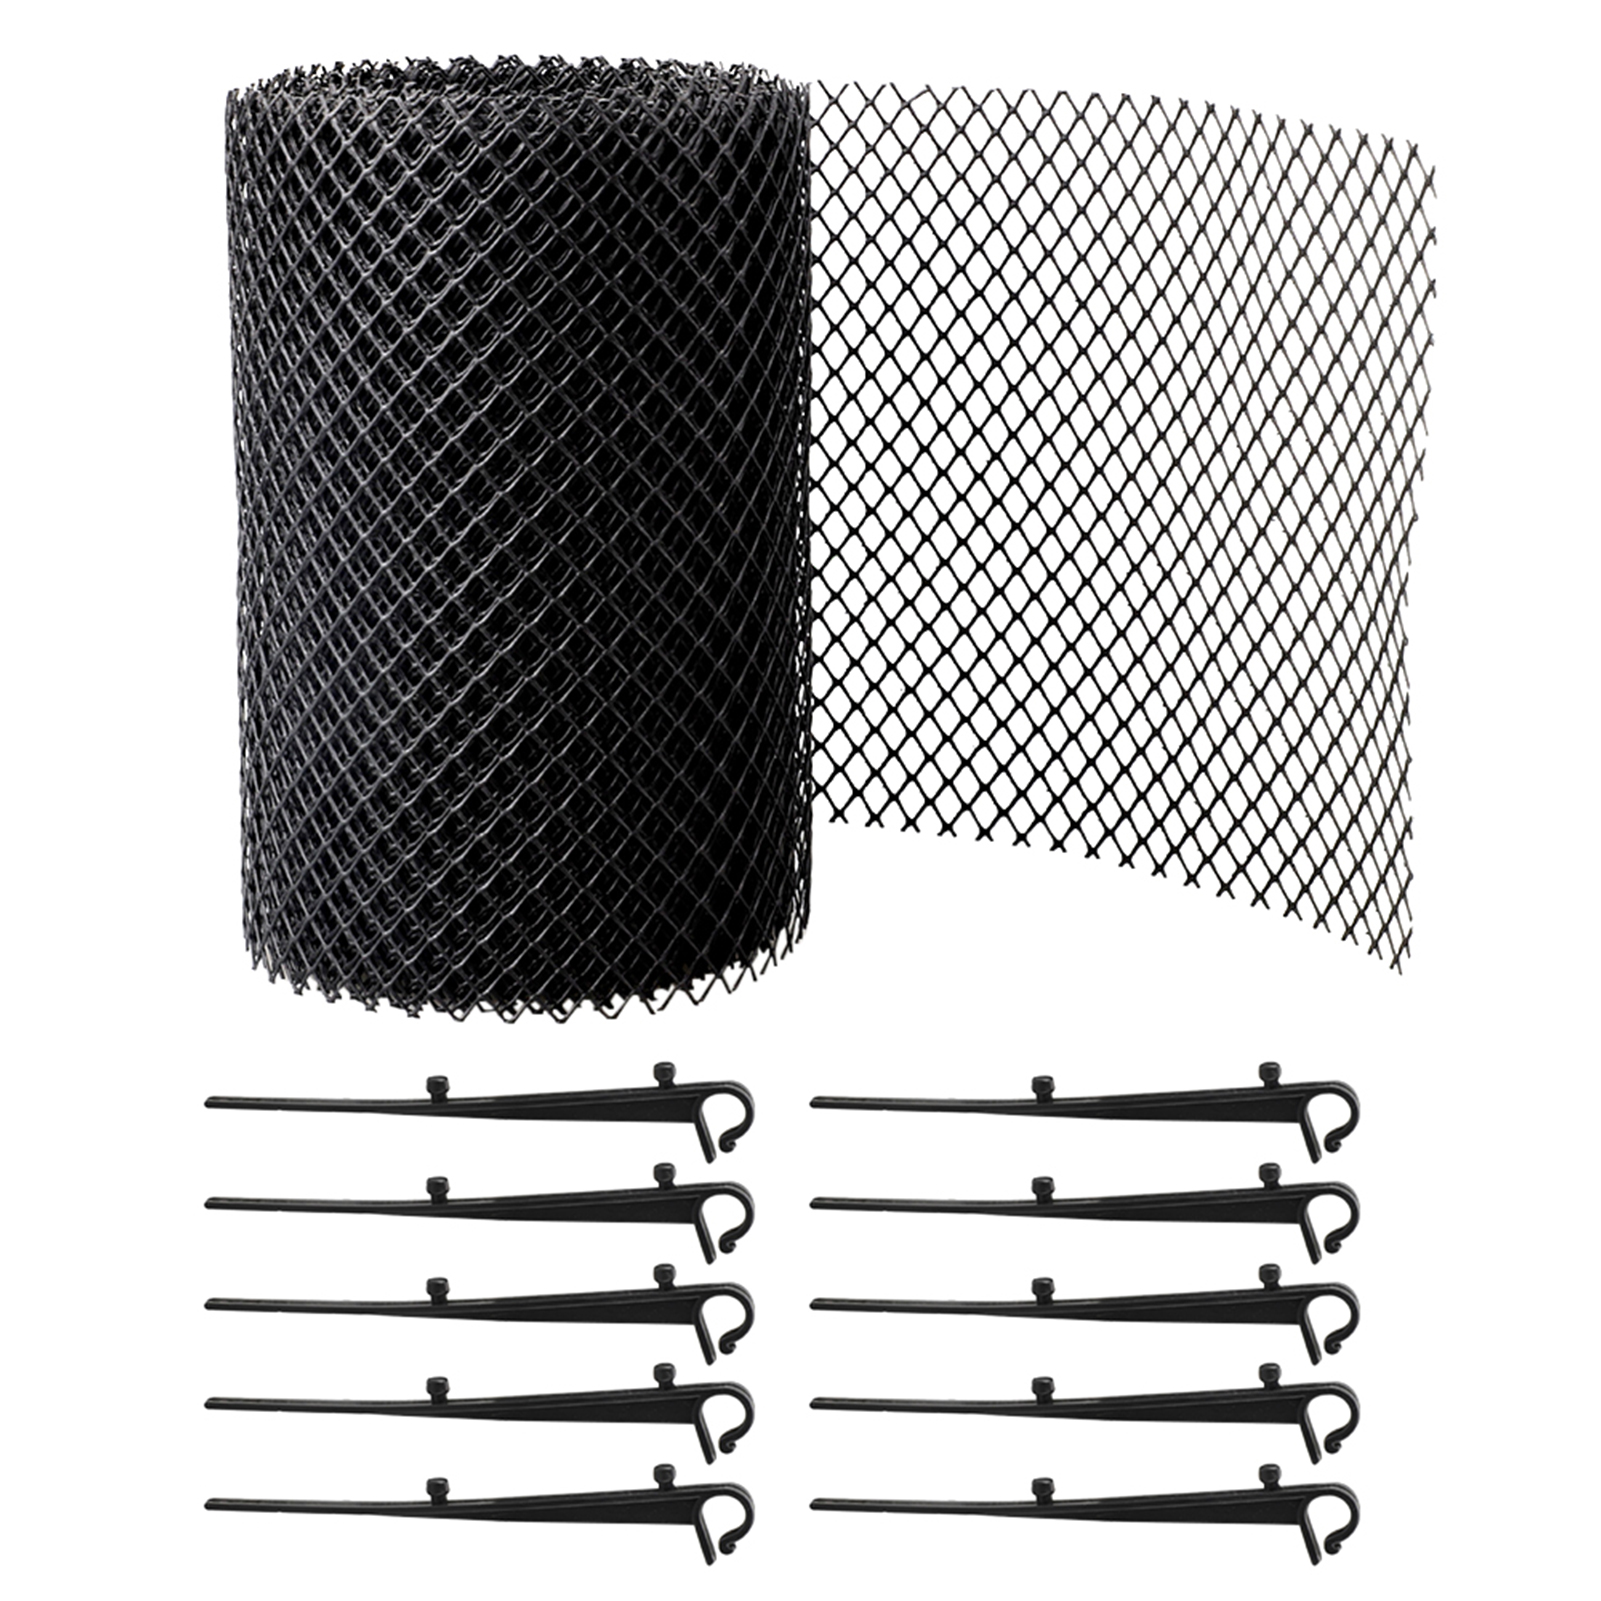 Industrious Flexible Mesh Cover Reduce Overflow Stops Leaves Outdoor Gutter Guard Garden Cleaning Tool Anti Clogging Easy Install Floor Complete Range Of Articles